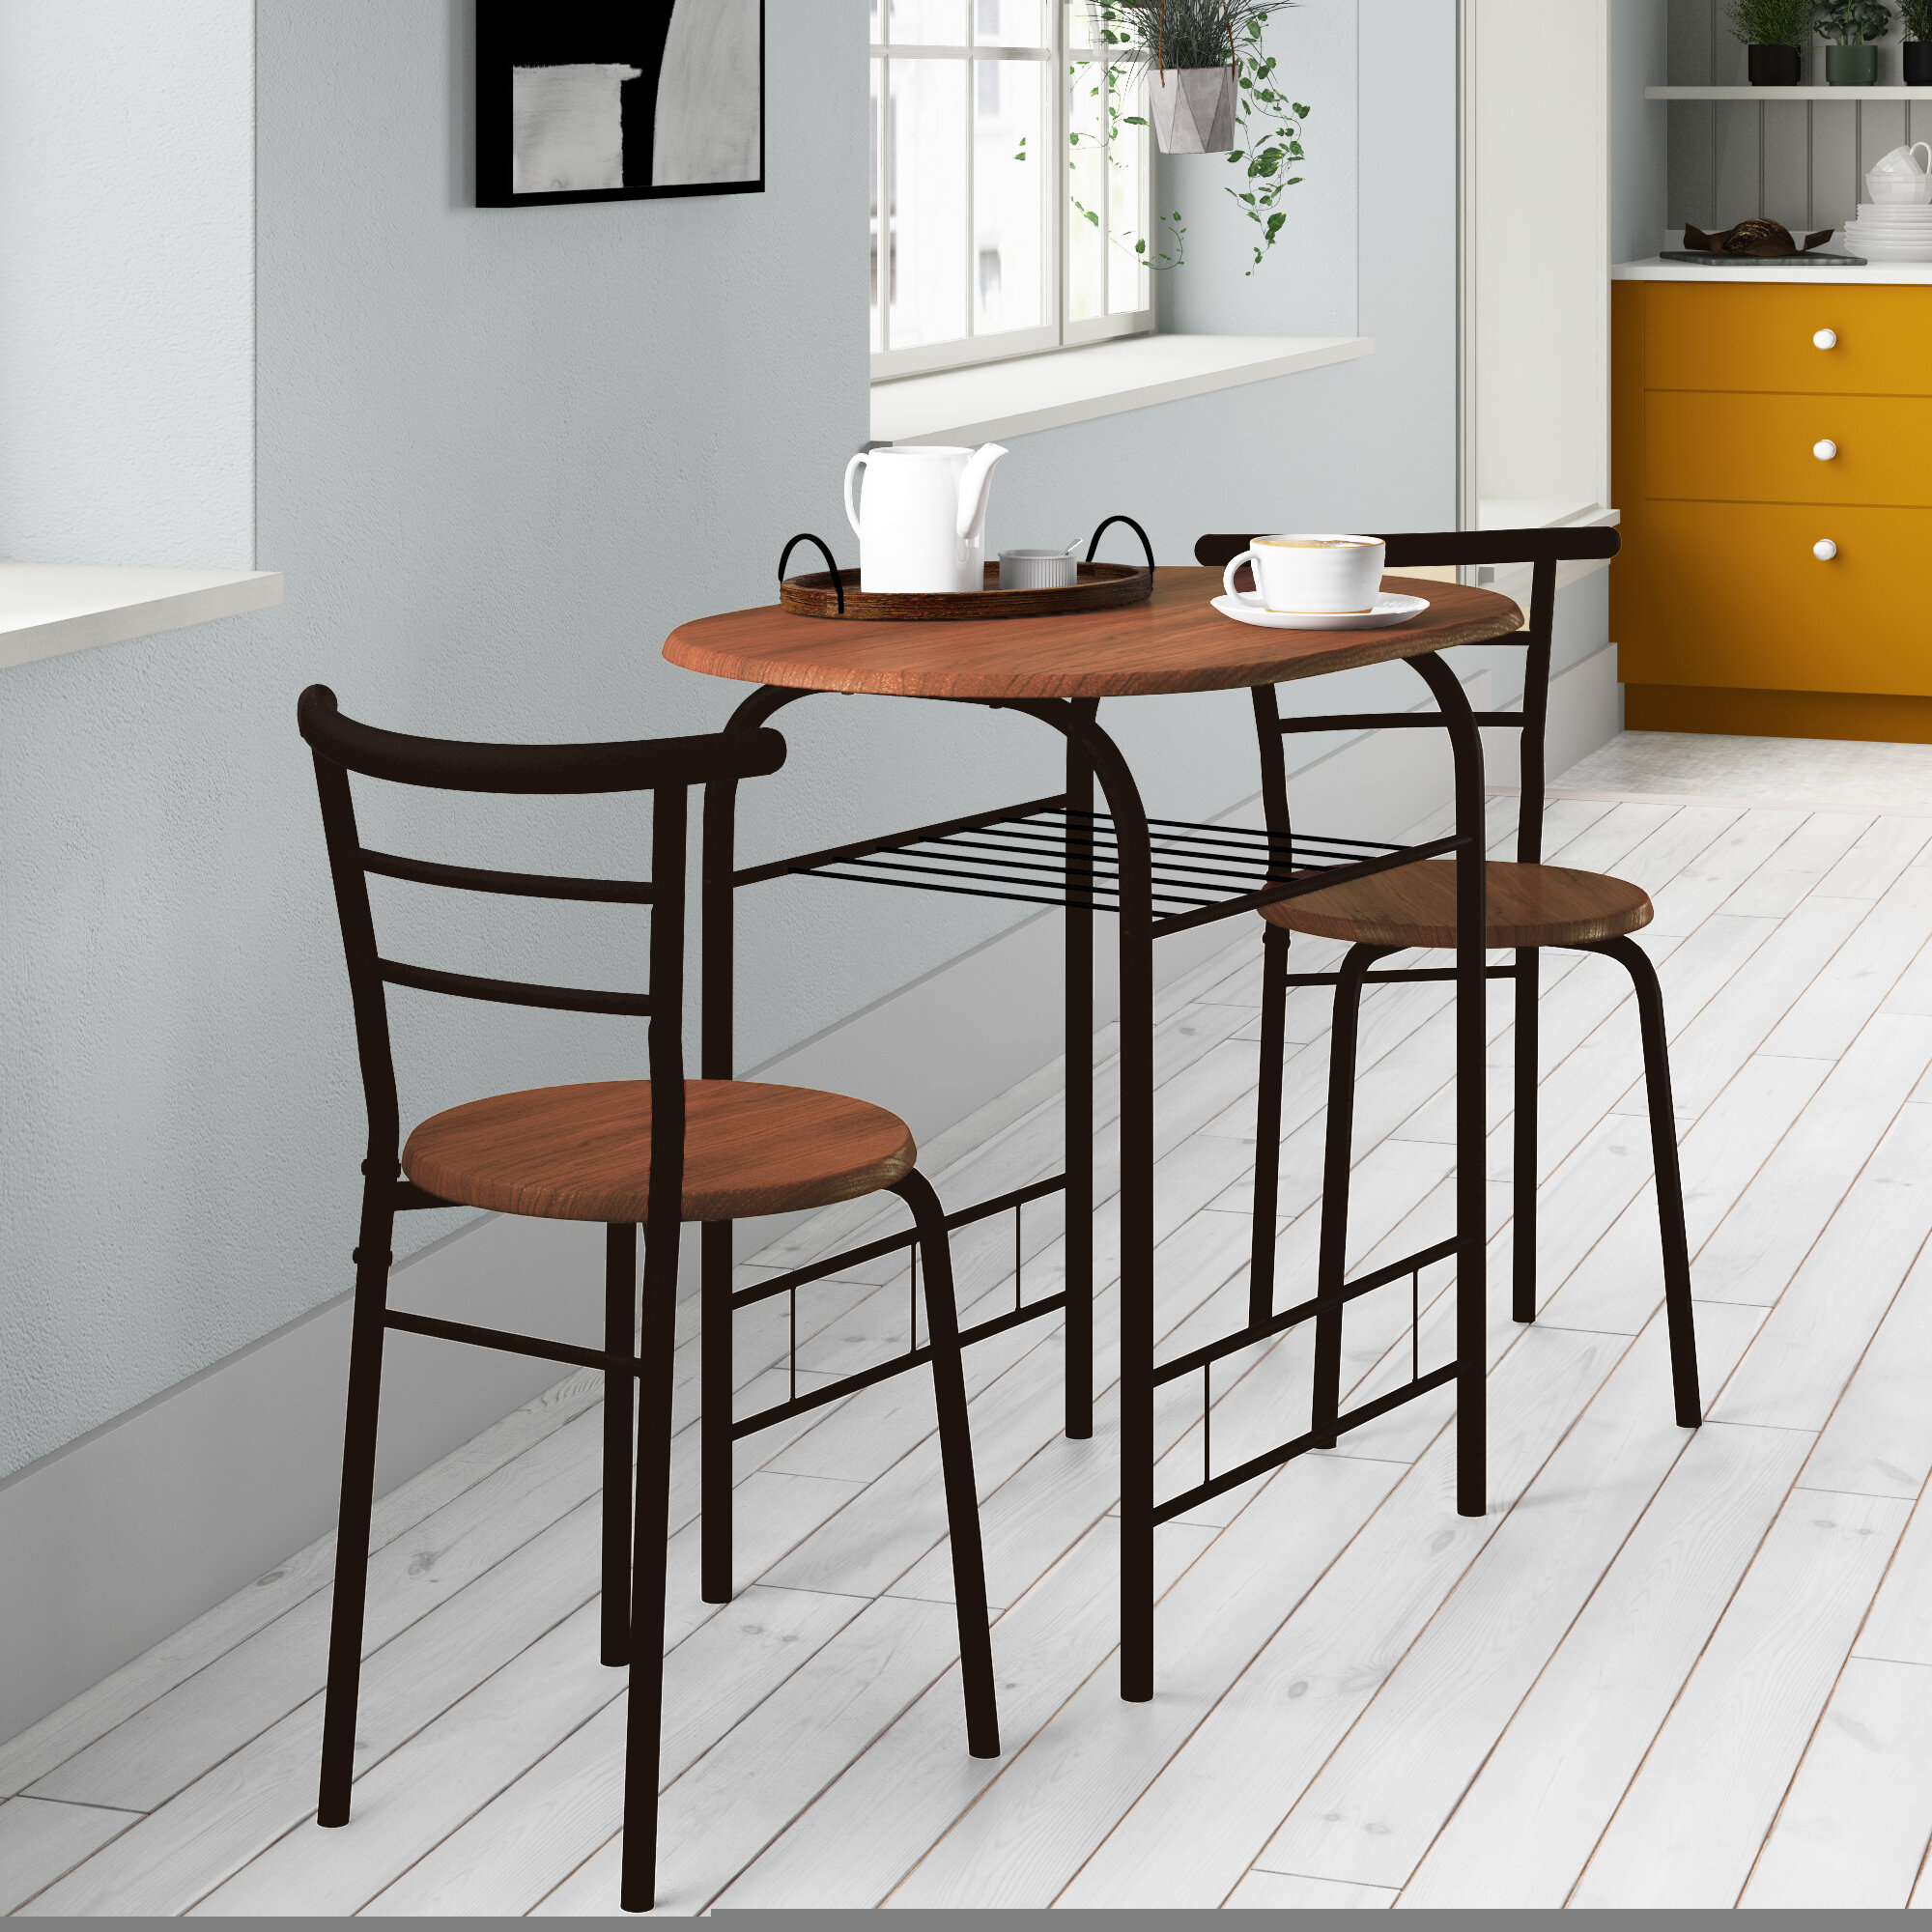 Volmer 3 Piece Compact Dining Set Intended For 2017 Smyrna 3 Piece Dining Sets (View 7 of 20)